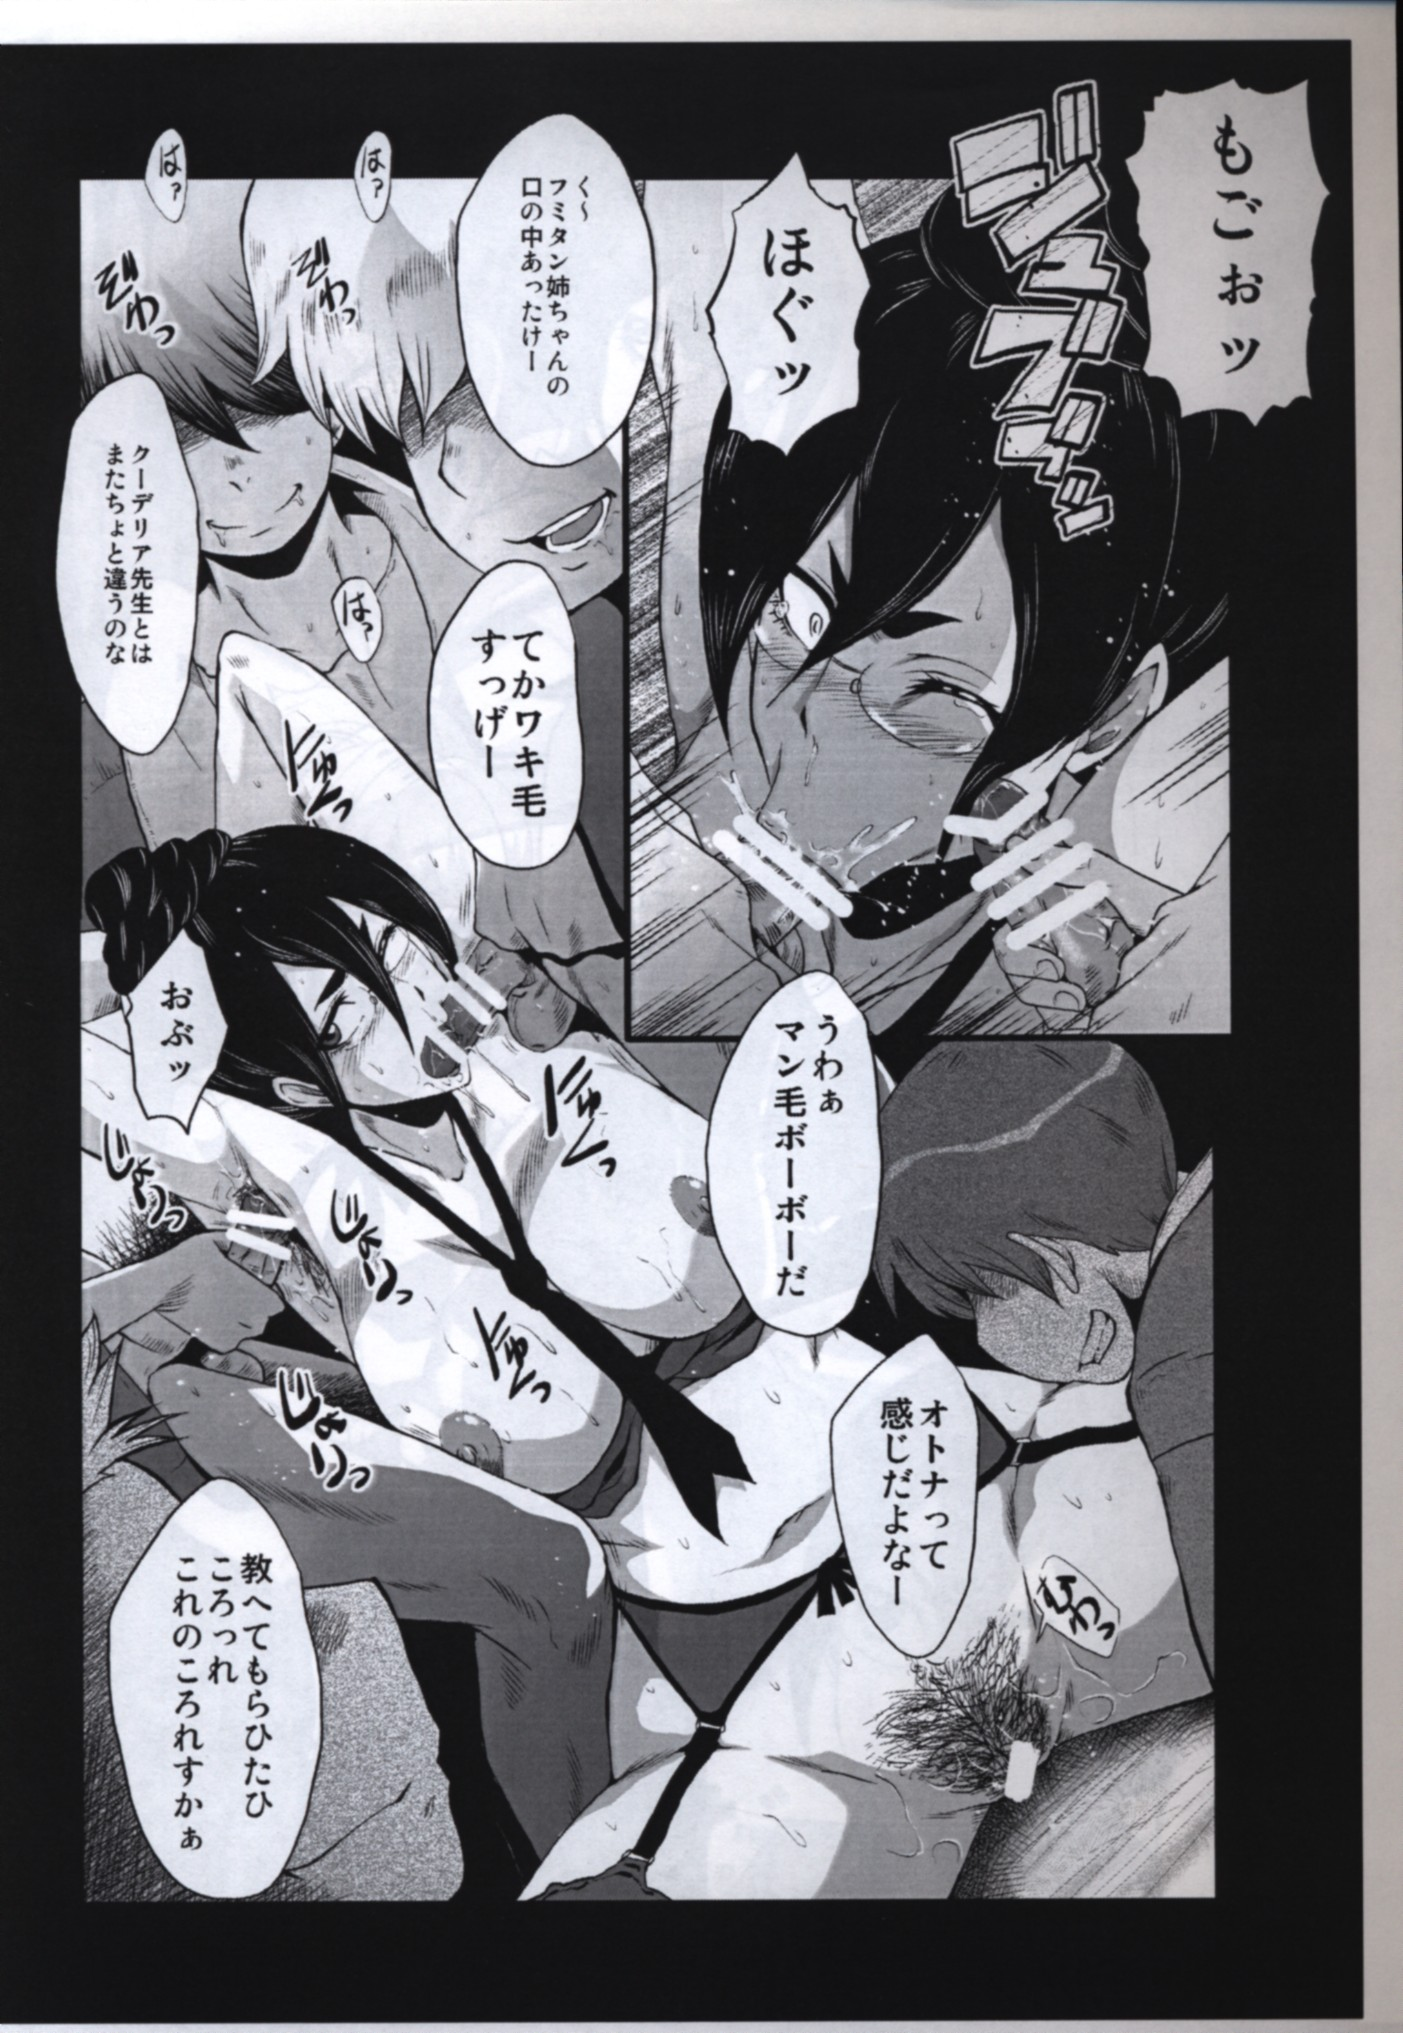 [Adult] Doujinshi - IRON-BLOODED ORPHANS / Fumitan Admoss (鉄血!!フミタン姉ちゃんの毛で遊ぼう!!) / Urakata Honpo